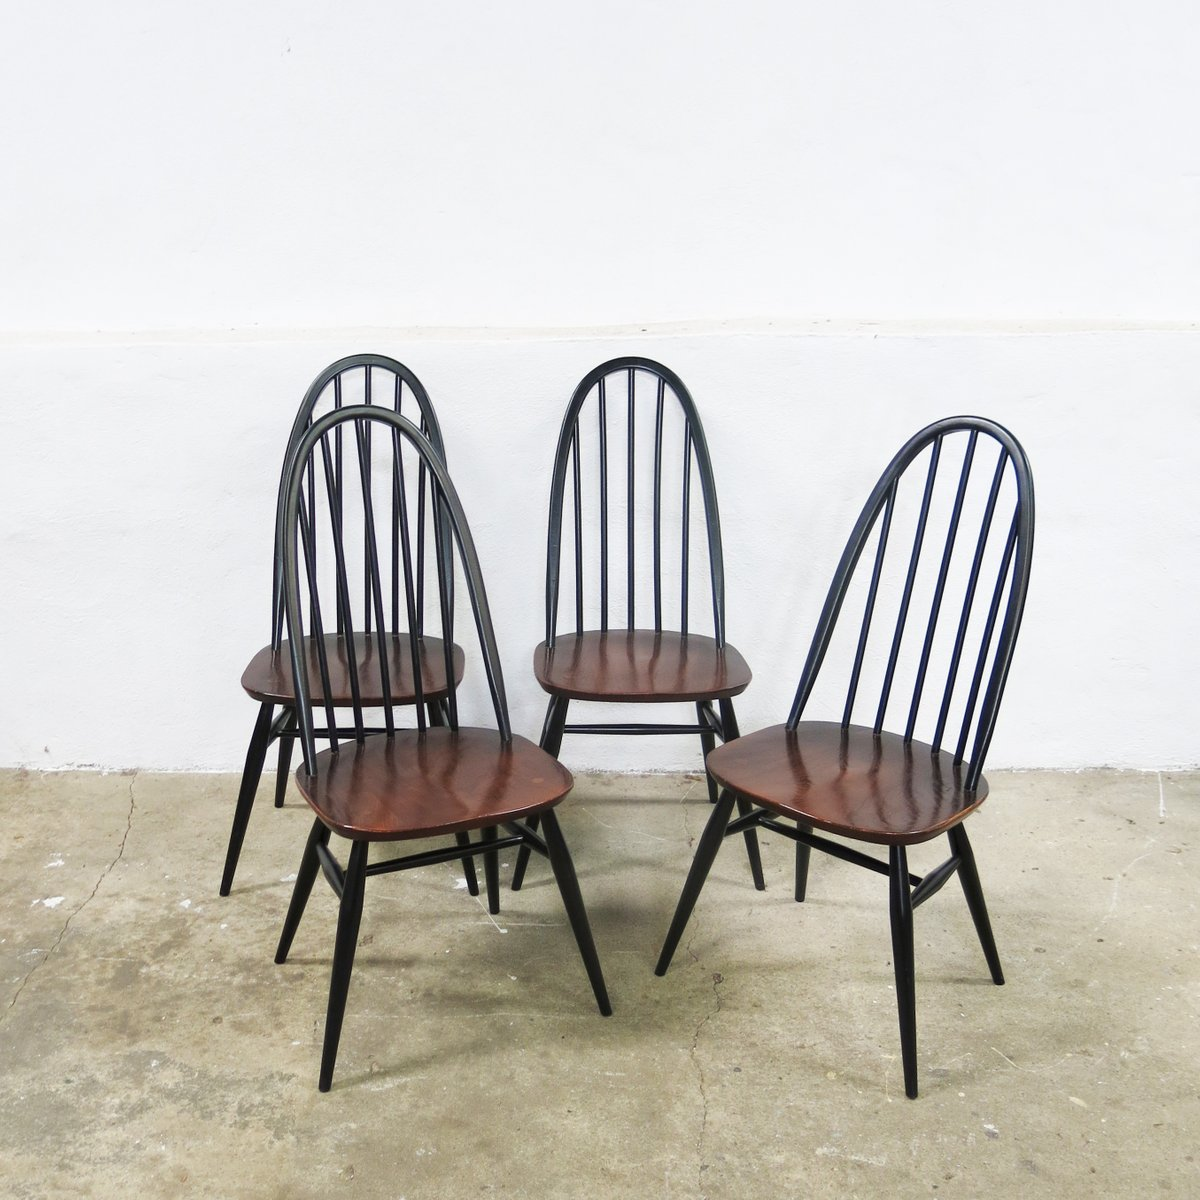 Quaker Back Windsor Armchairs By Lucian Ercolani For Ercol 1970s Set Of 4 F